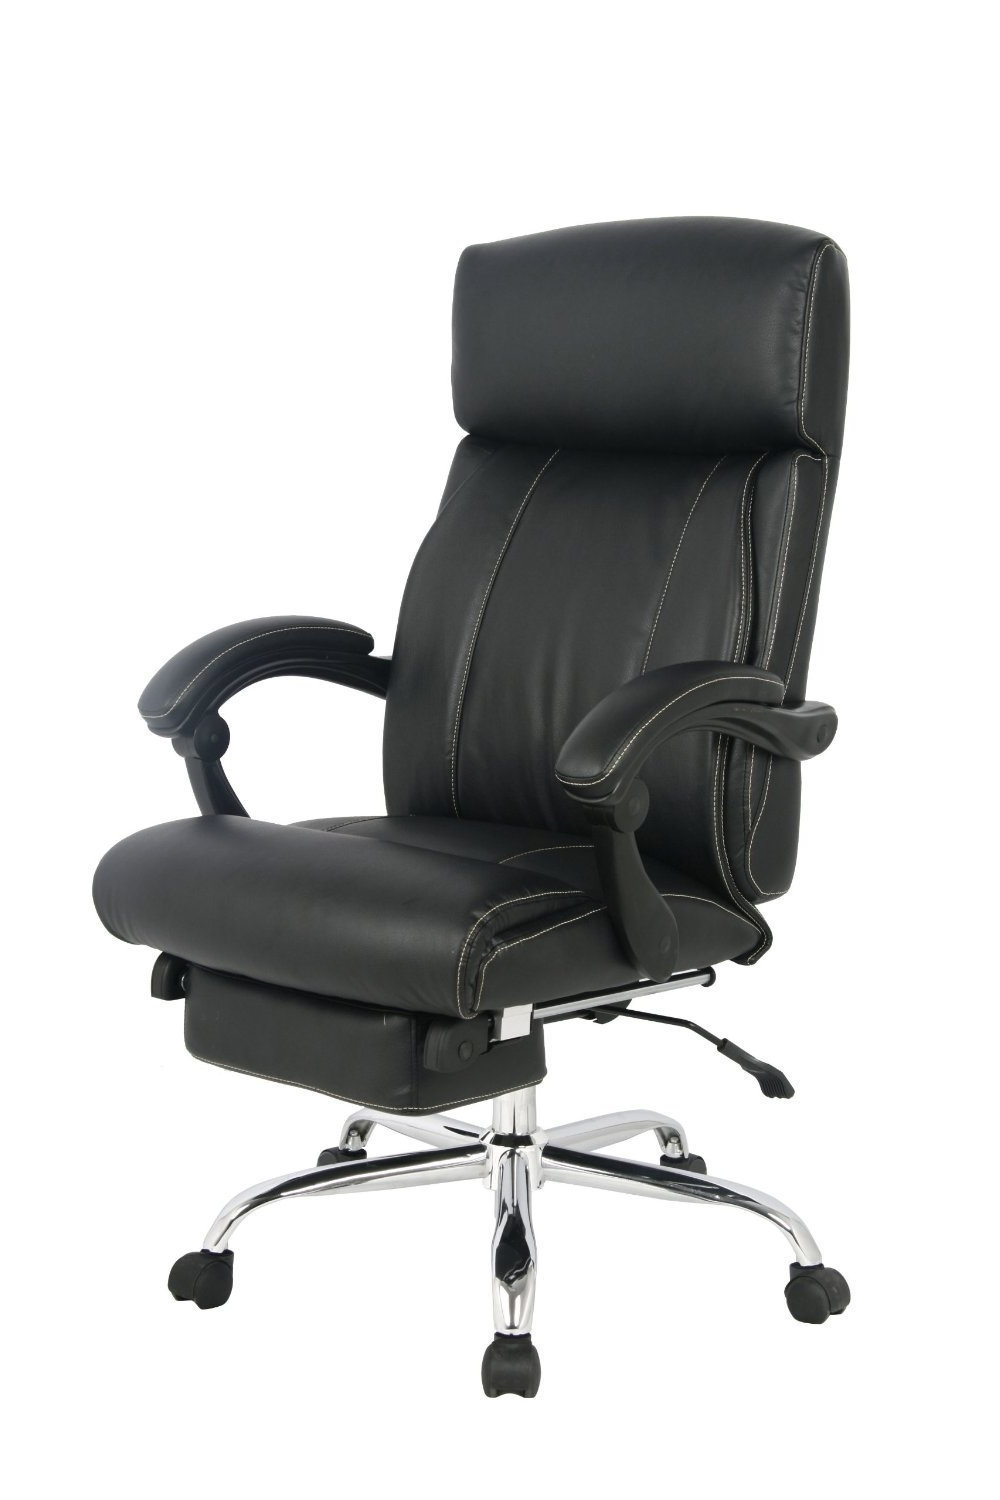 Cheap Reclining Office Chair With Footrest, Find Reclining Office For Most Current Executive Office Chairs With Footrest (View 6 of 20)